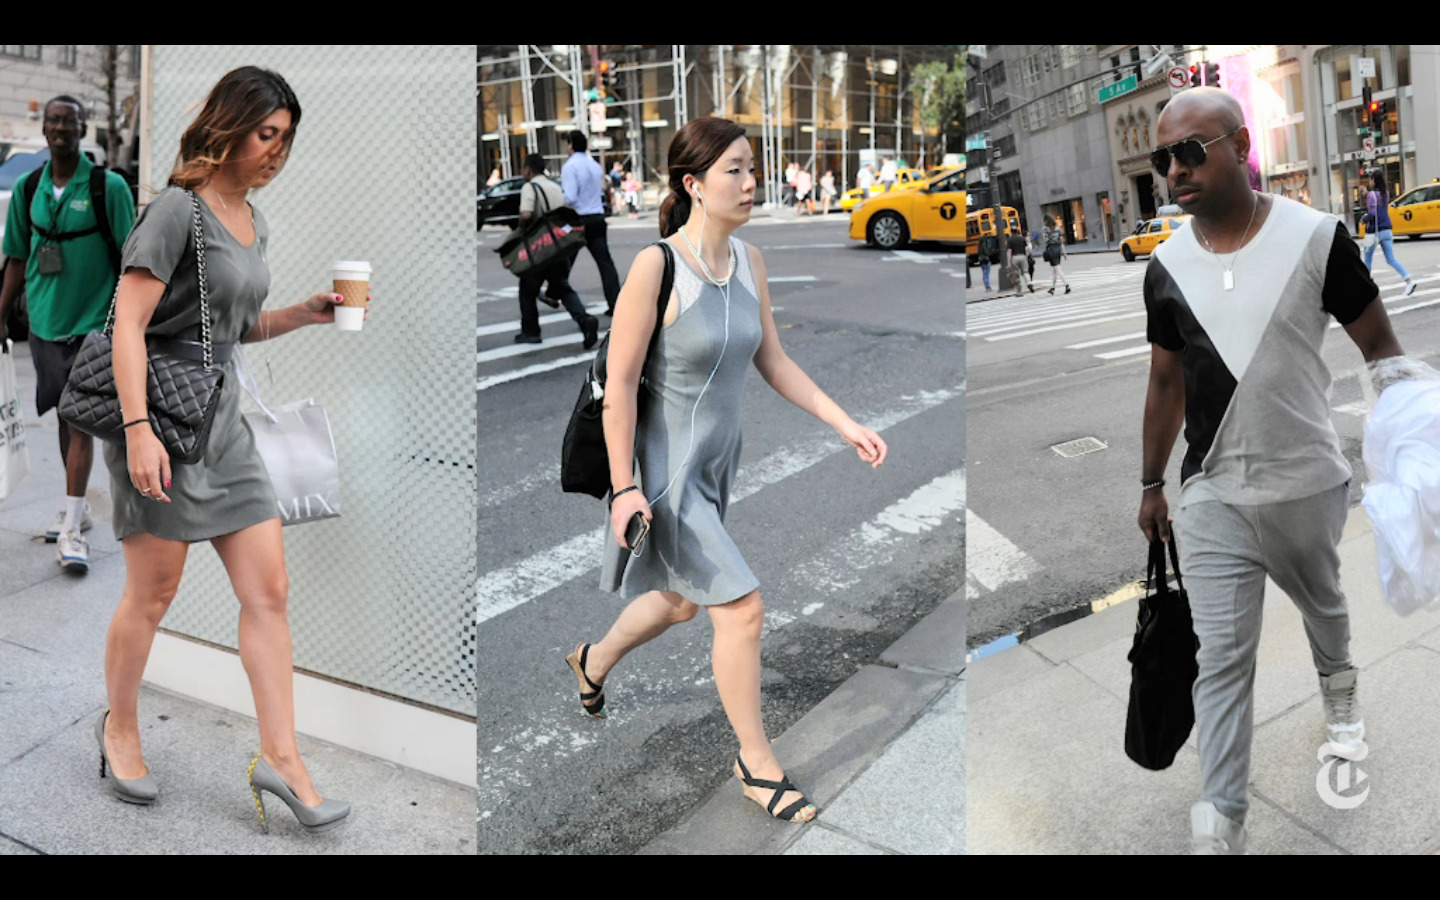 Bill Cunningham | Gray Matters (The New York Times)